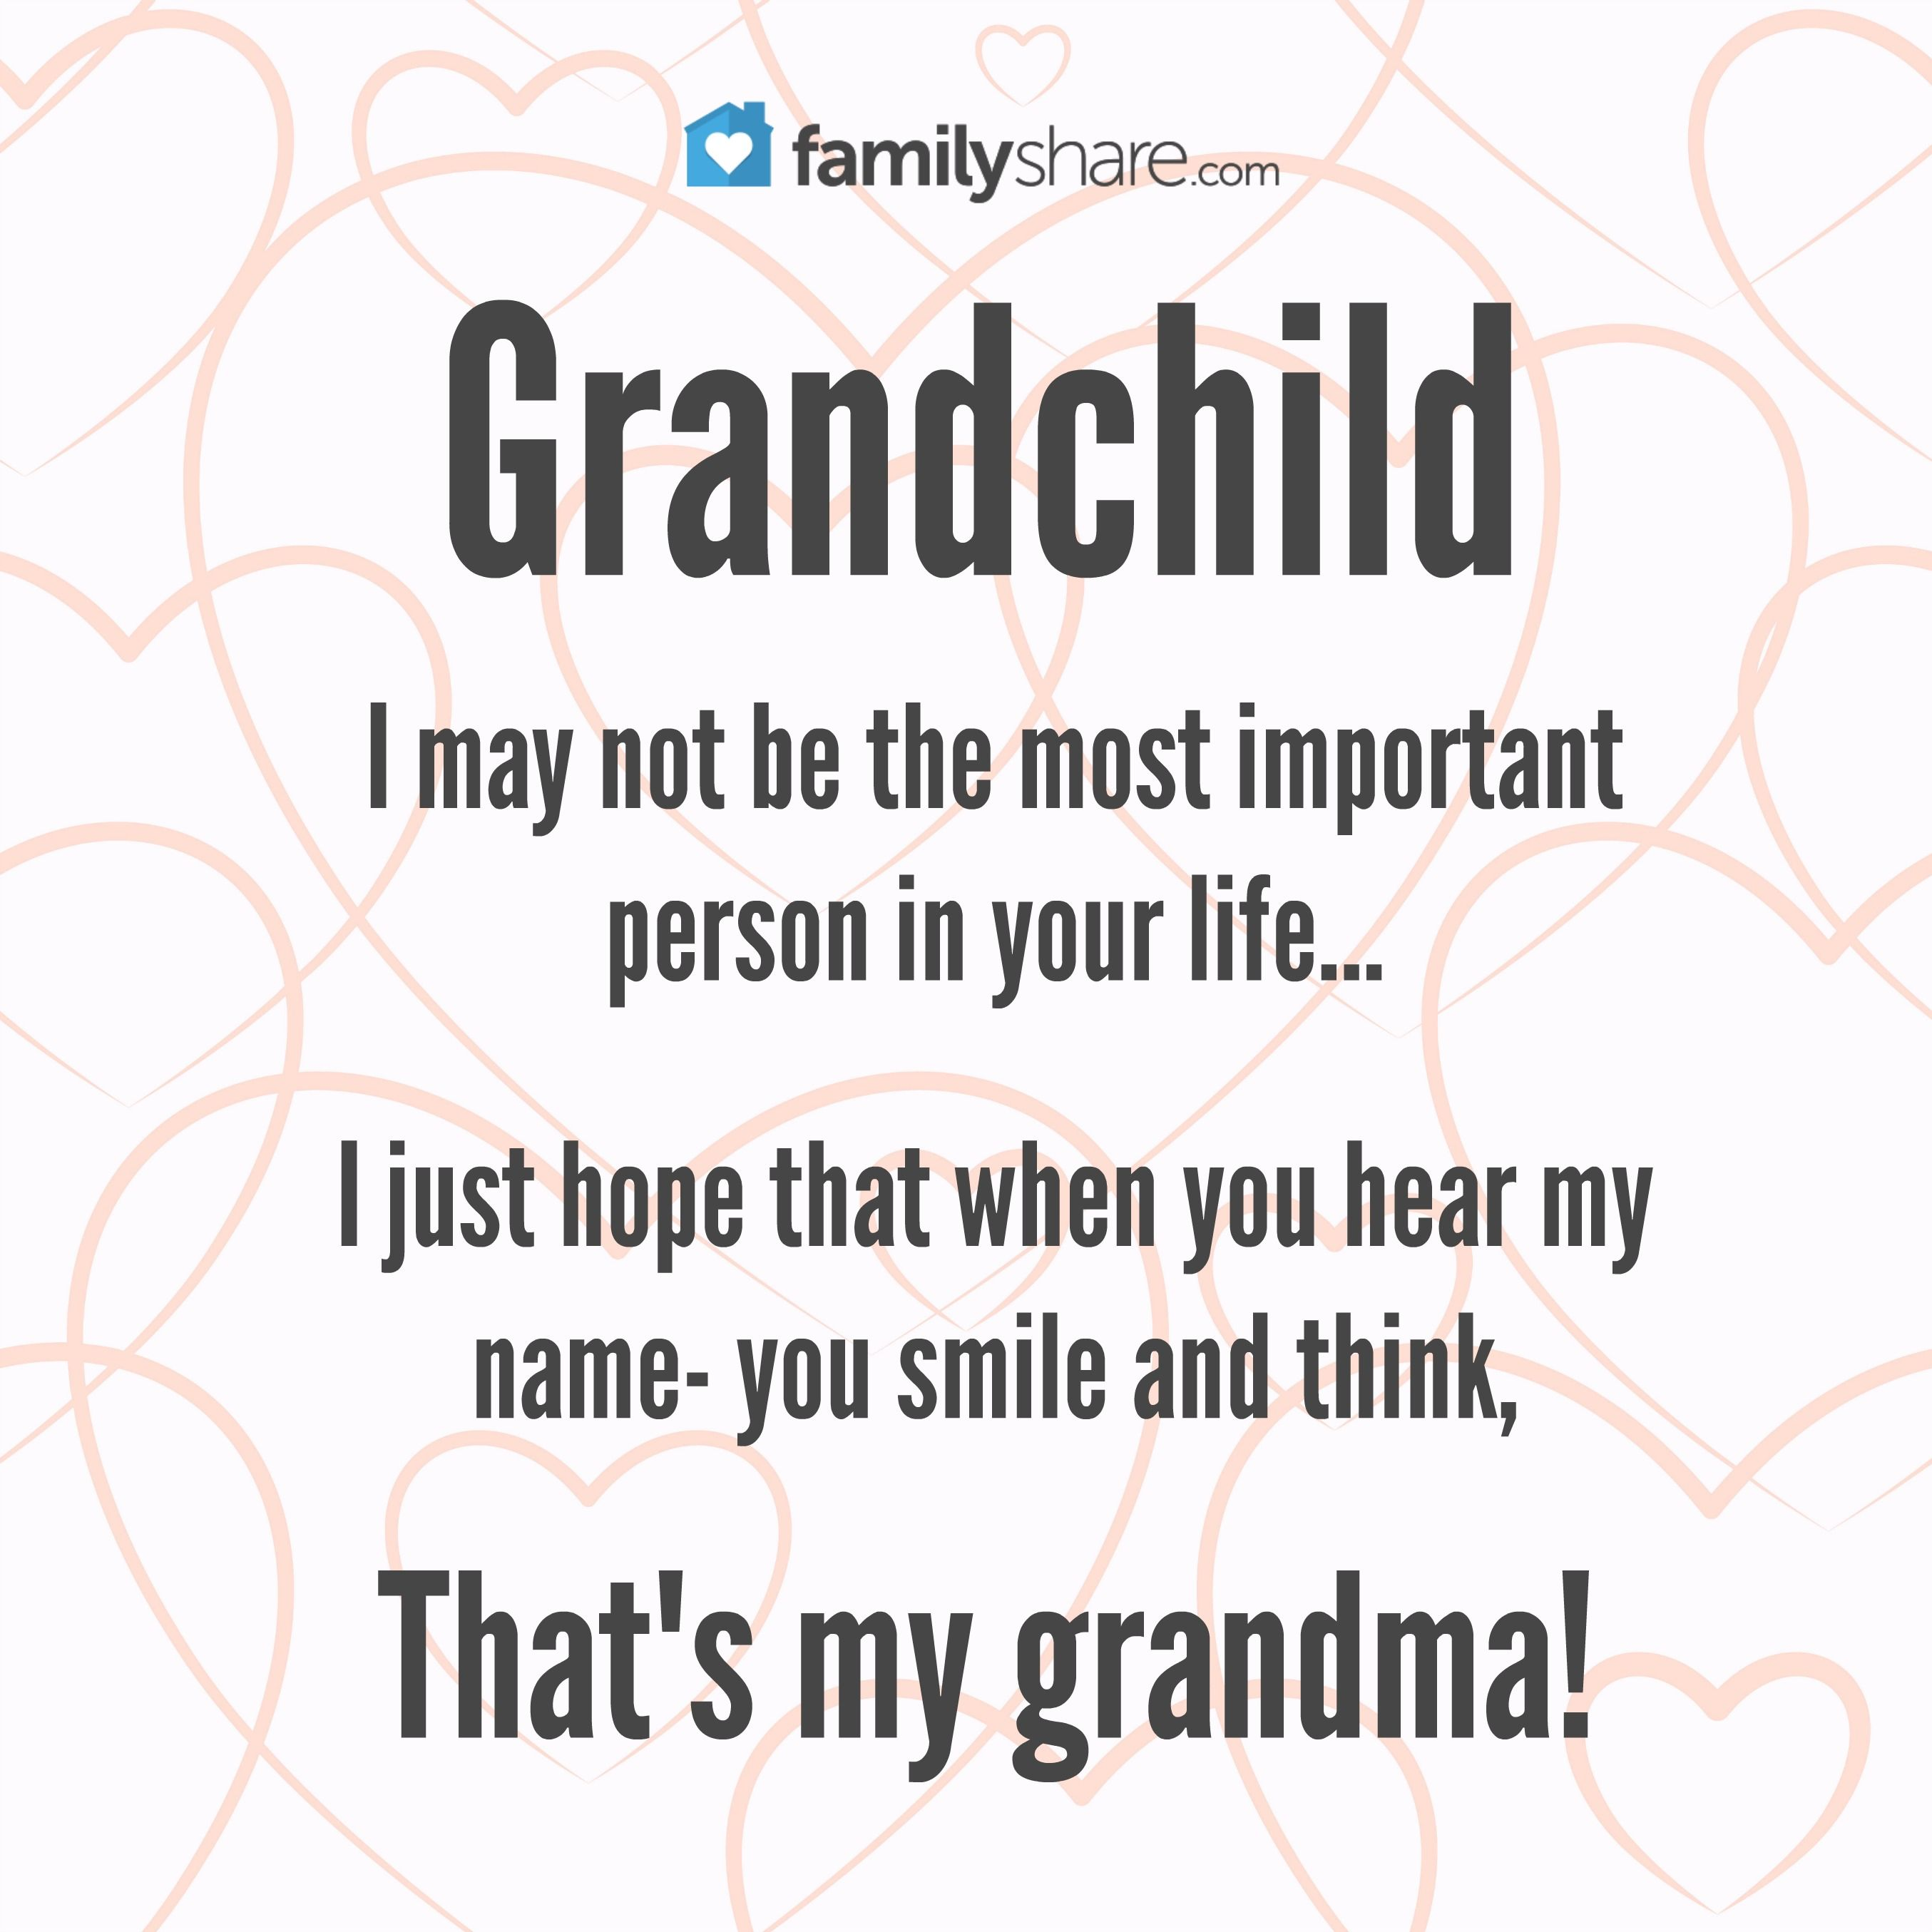 I Love My Granddaughter Quotes Grandchild I May Not Be The Most Important Person In Your Life